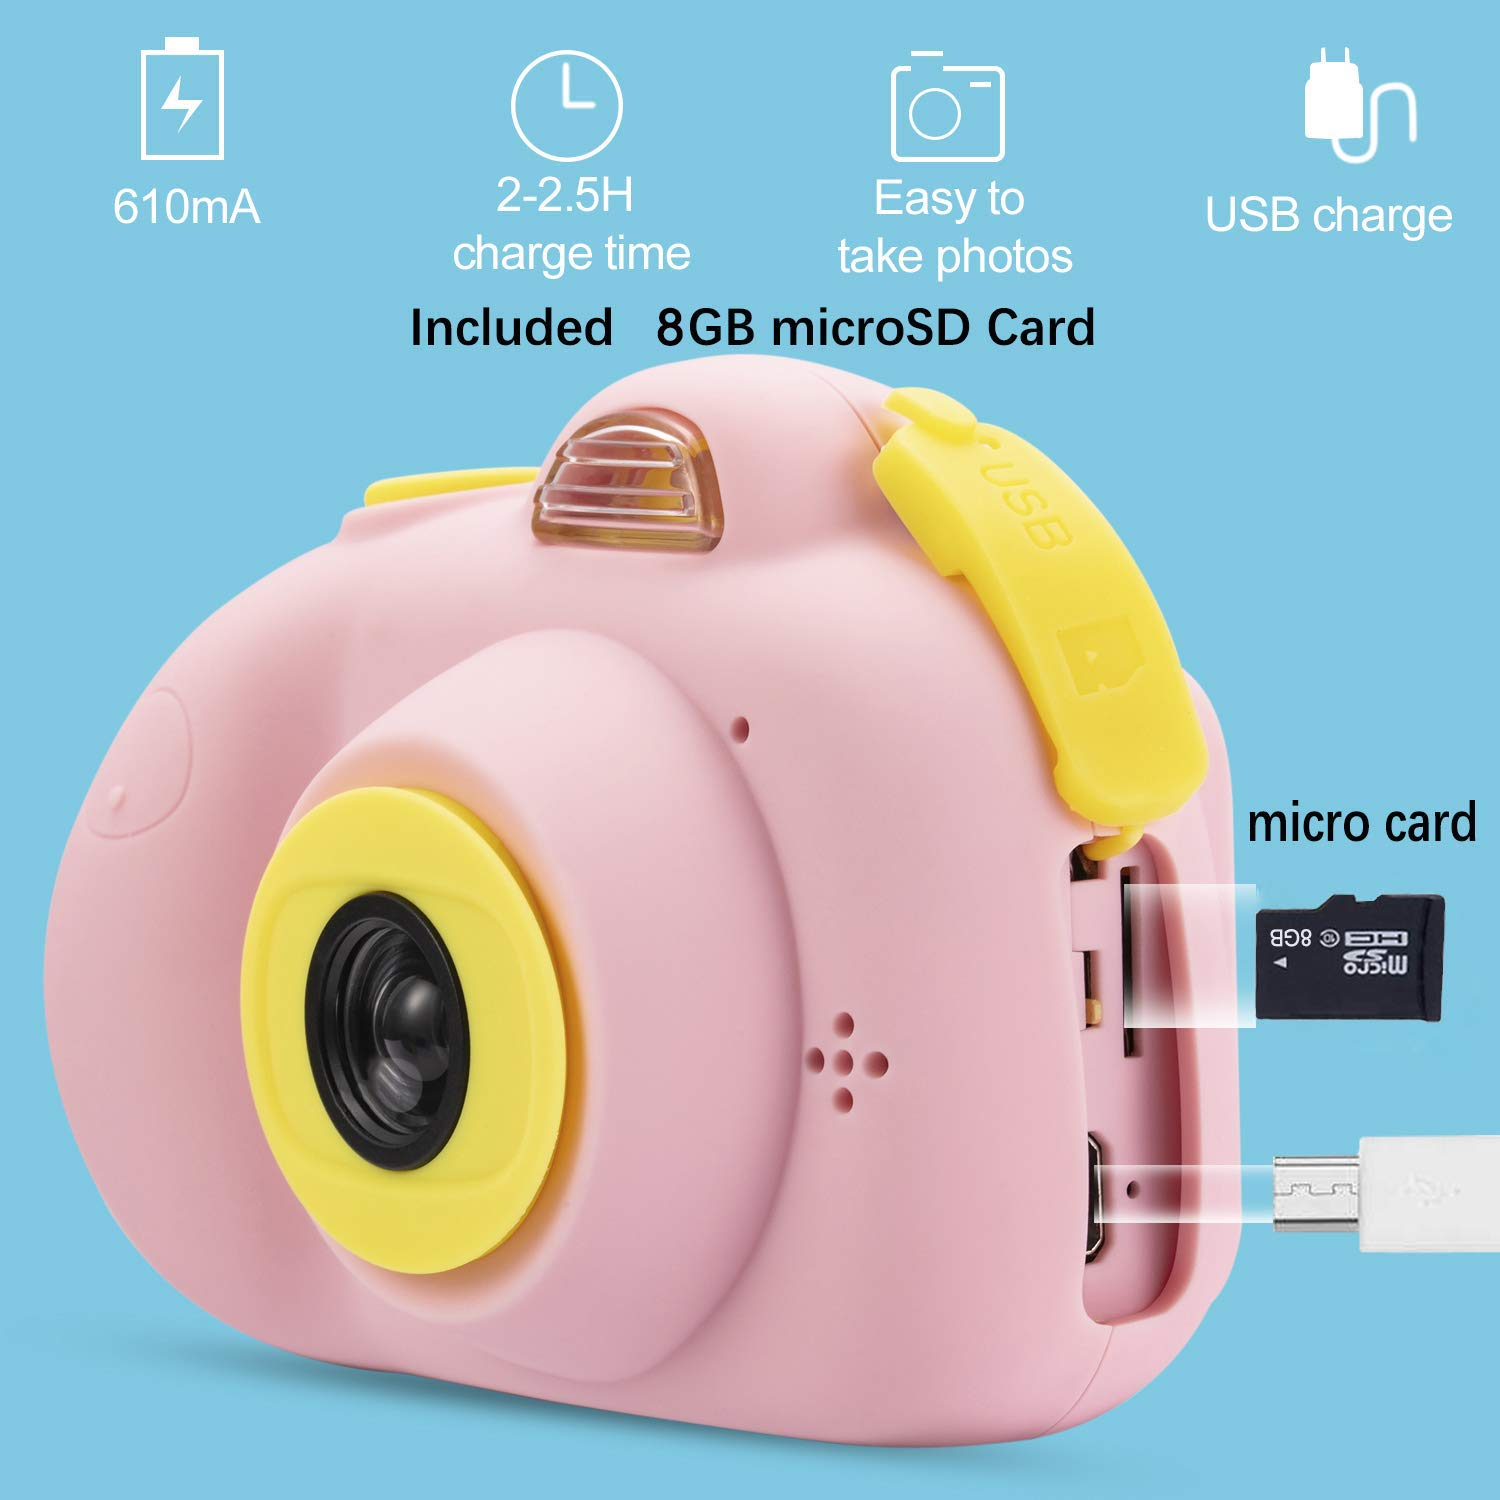 DIIGIITO Kids Camera Gifts for 4-8 Year Old Girls, Shockproof Cameras Great Gift Mini Child Camcorder for Little Girl with Soft Silicone Shell for Outdoor Play,(16GB Memory Card Included) (Pink) by DIIGIITO (Image #4)